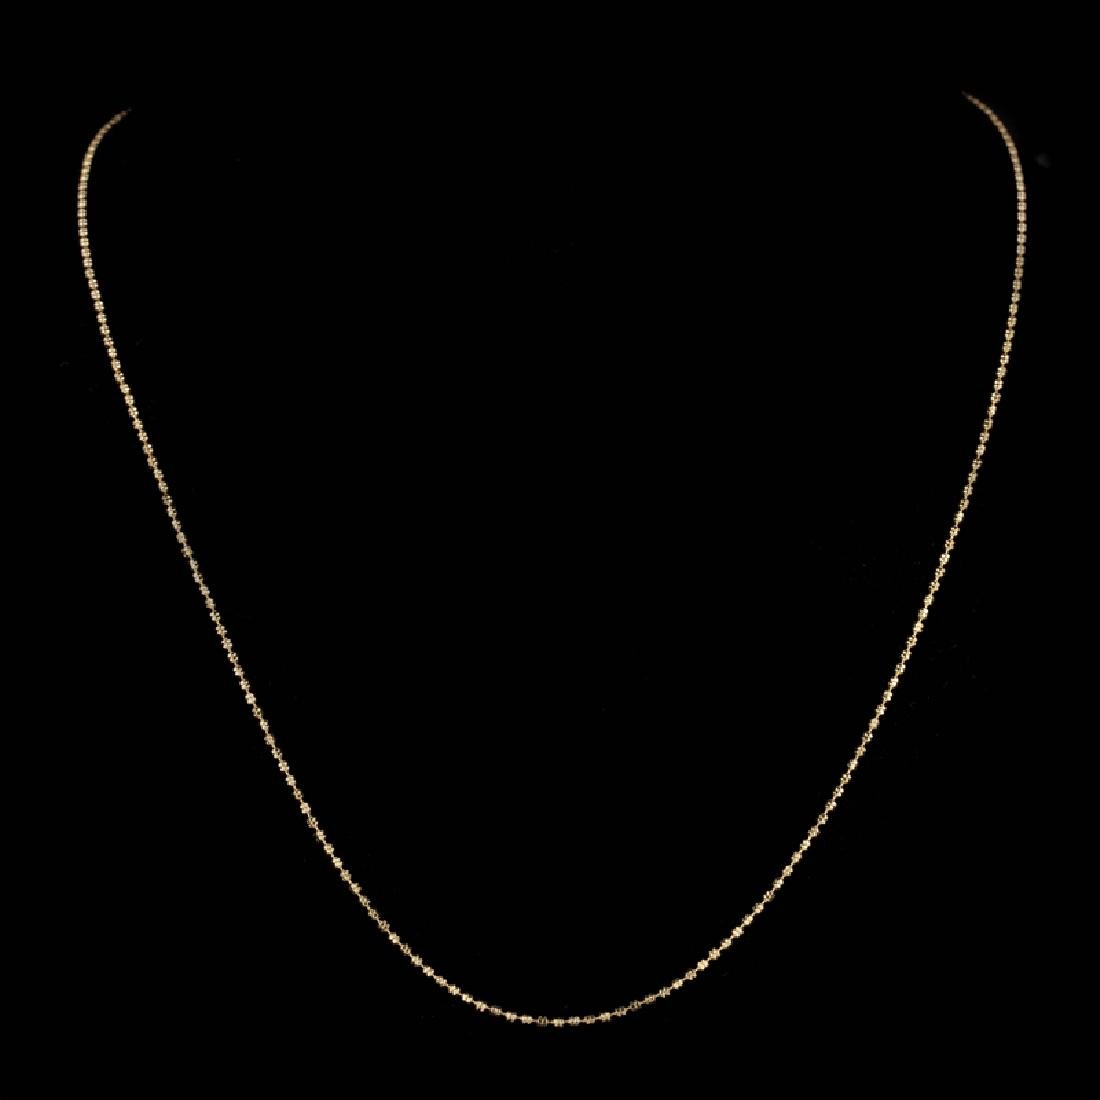 *Fine Jewelry 14KT Gold, 3.8GR, 18'' Double Bead Chain